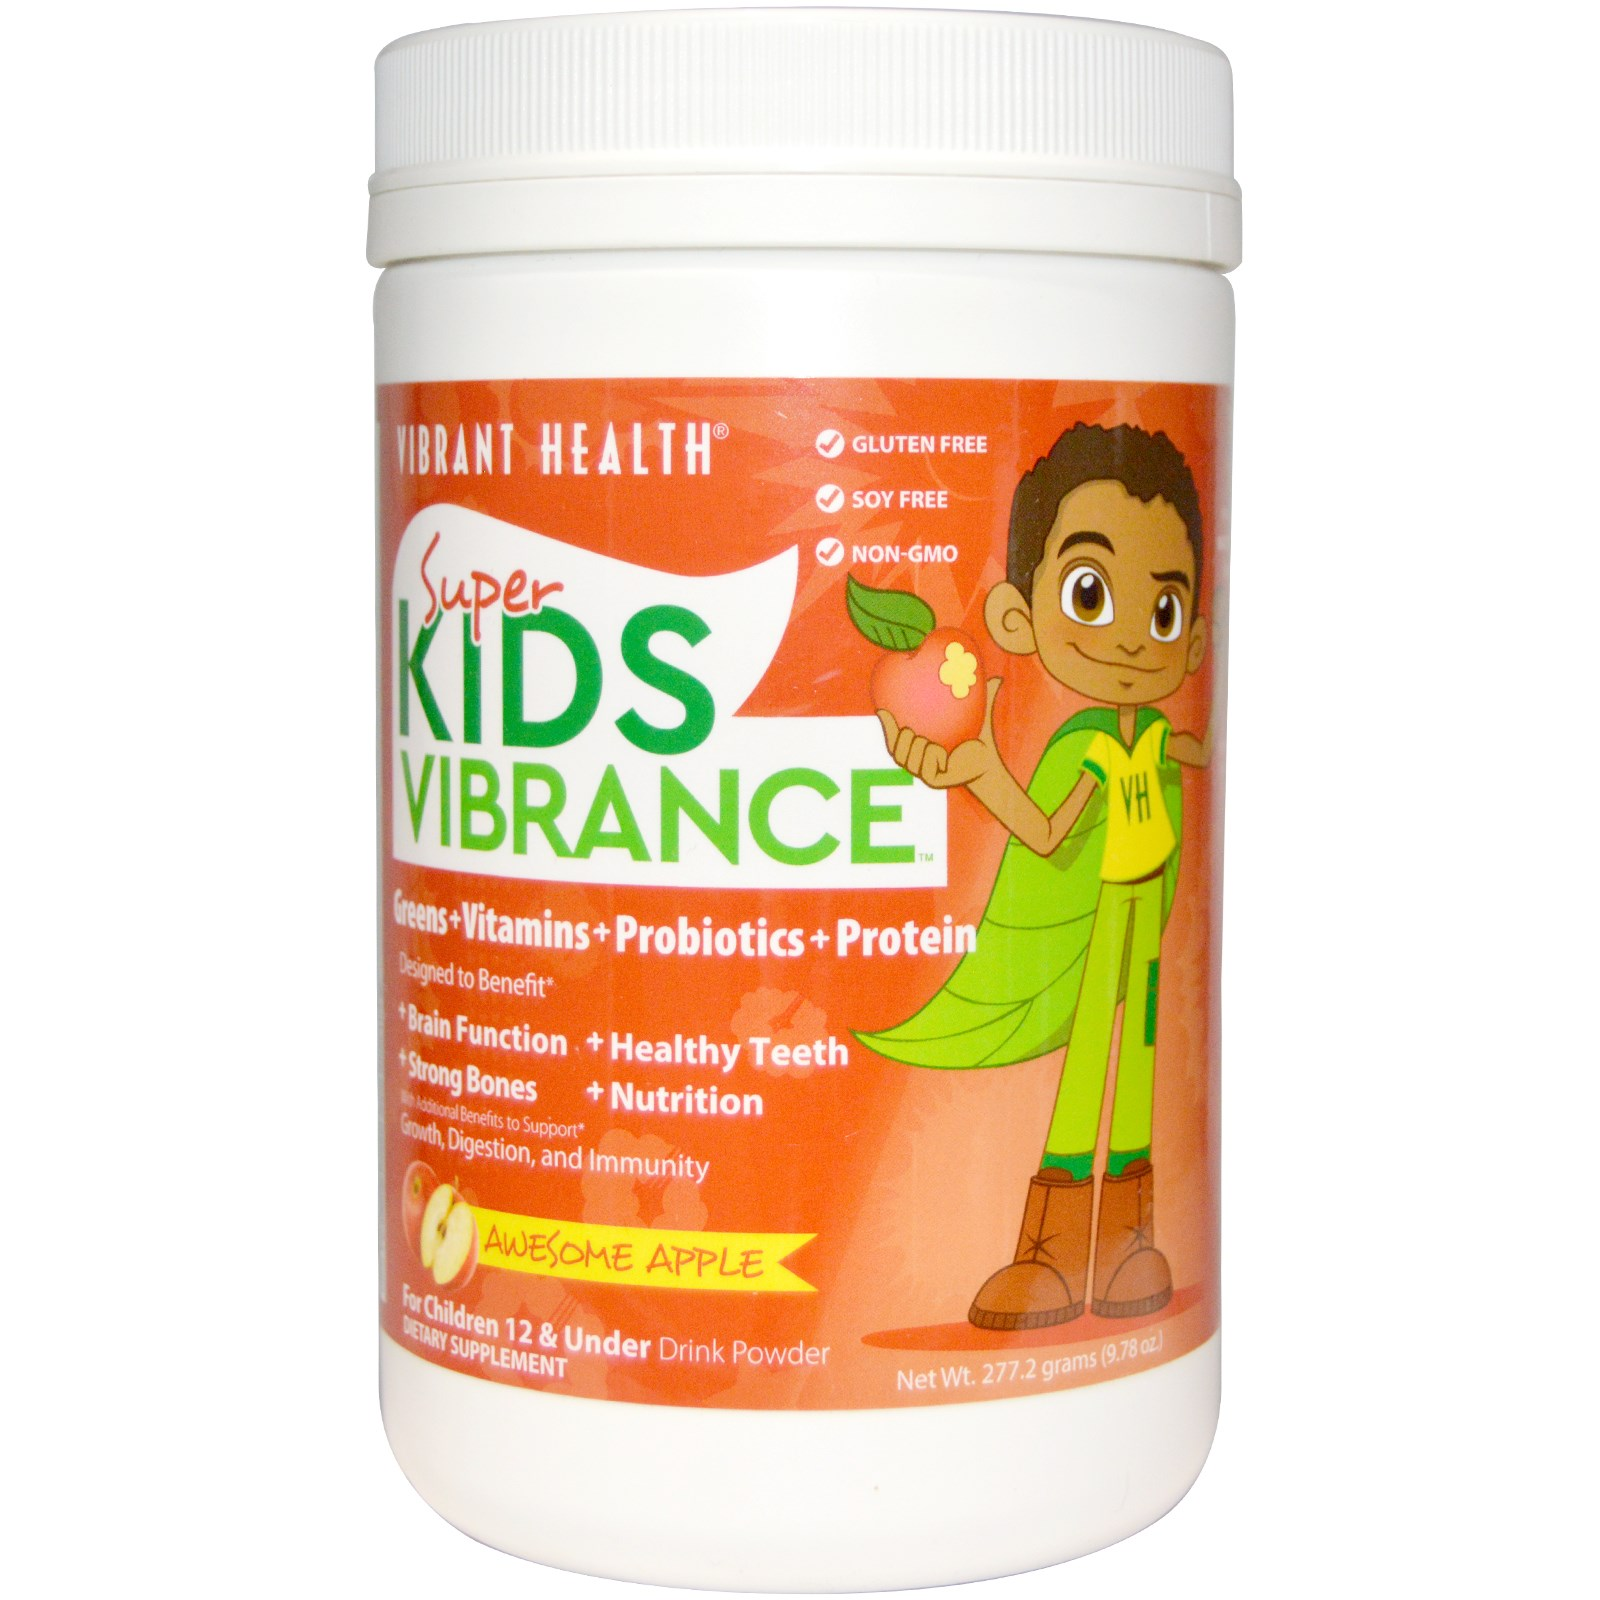 Vibrant Health, Super Kids Vibrance, Drink Powder, Awesome Apple ...